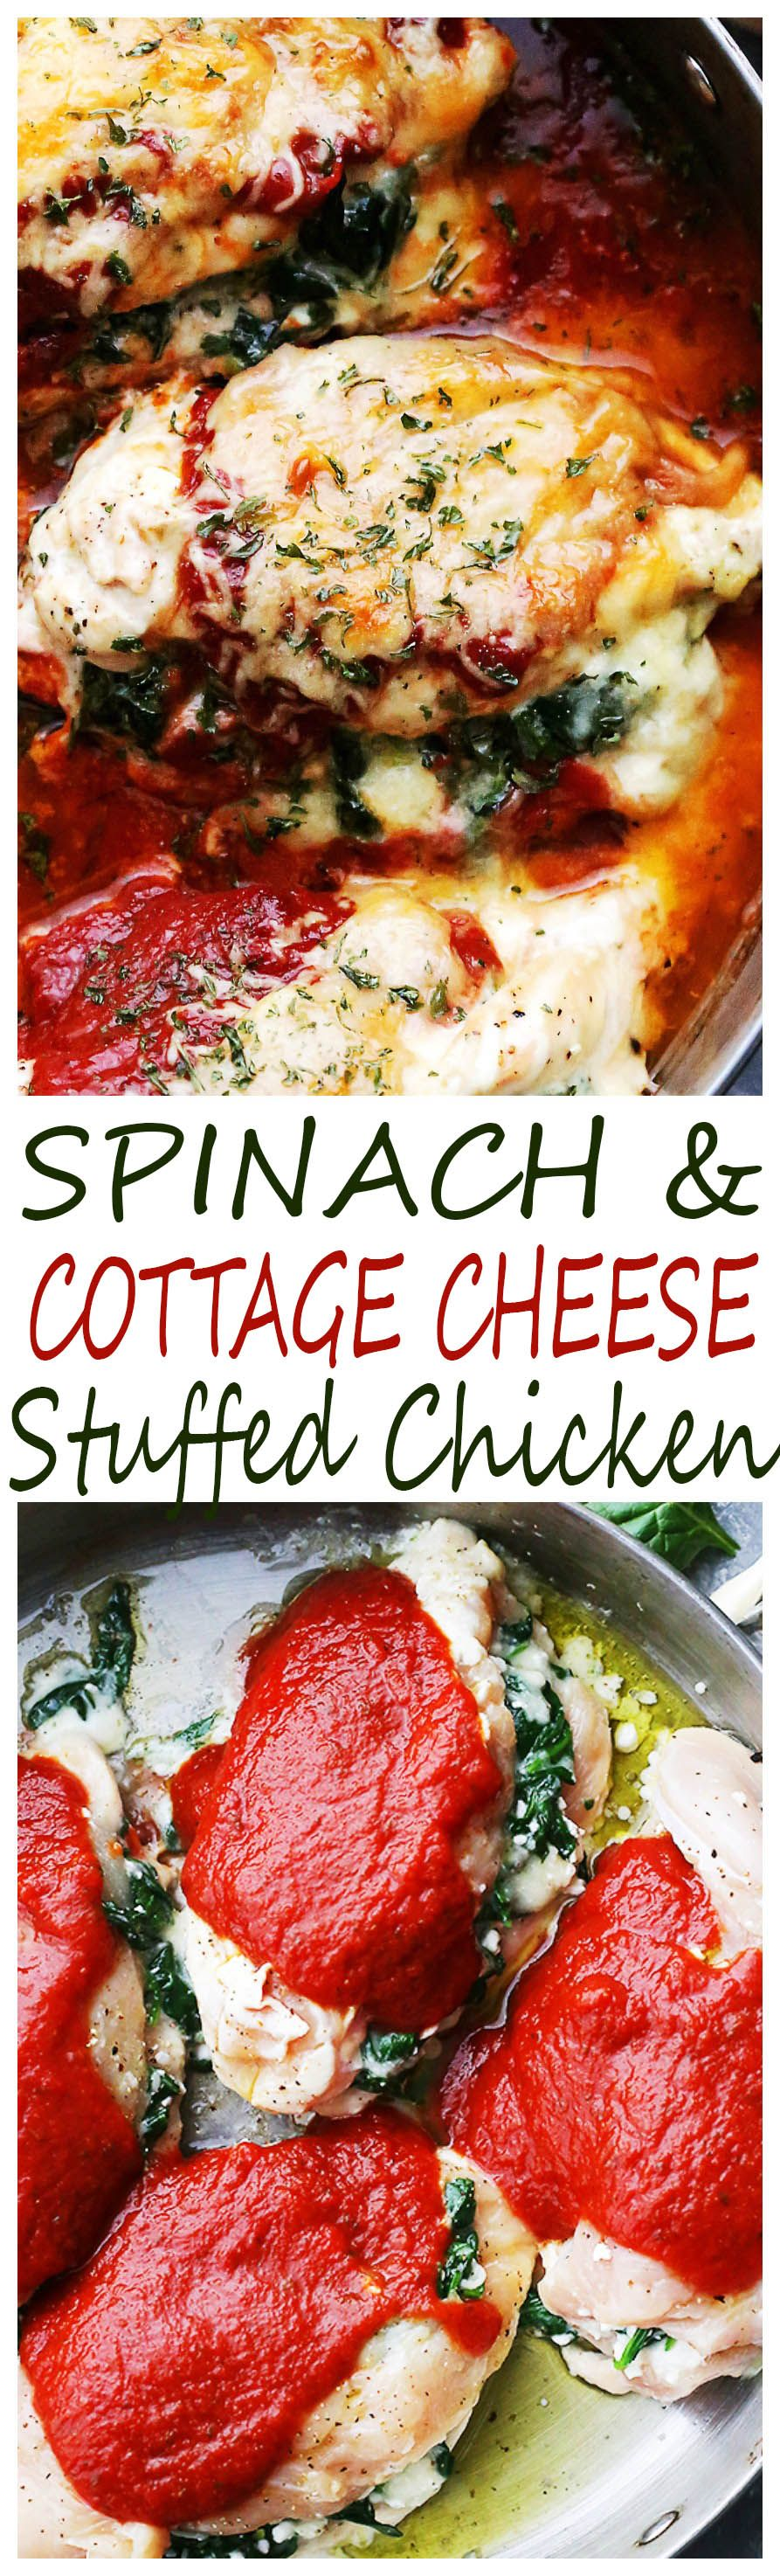 Saucy Spinach and Cottage Cheese Stuffed Chicken – Easy, delicious, yet healthy stuffed chicken breasts with spinach and cottage cheese all baked in a hot and bubbly pasta sauce.